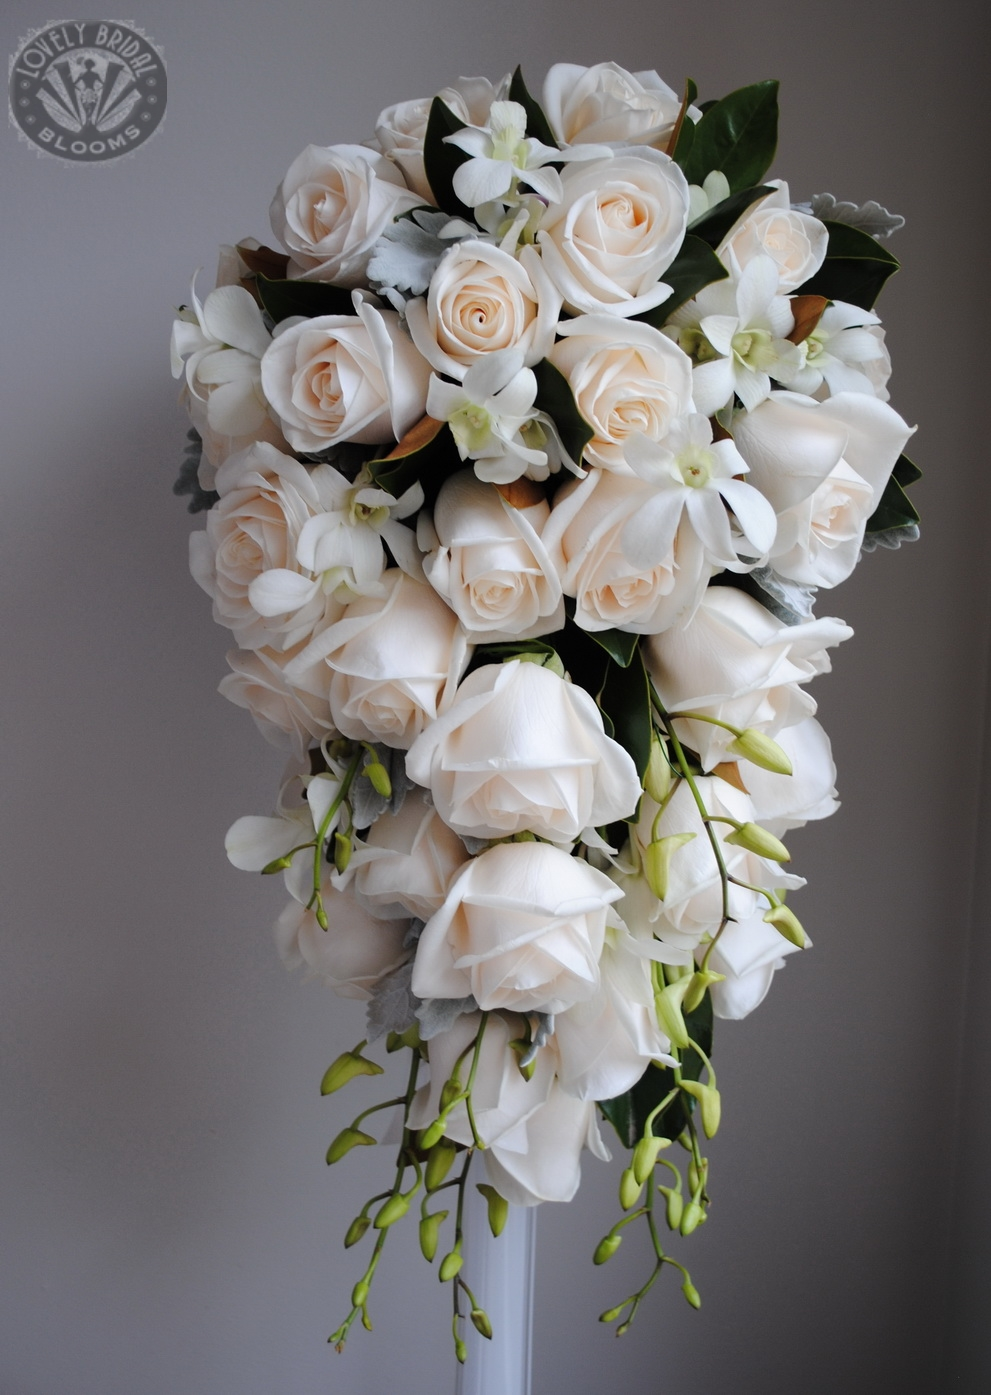 Trail bouquet of roses and orchids